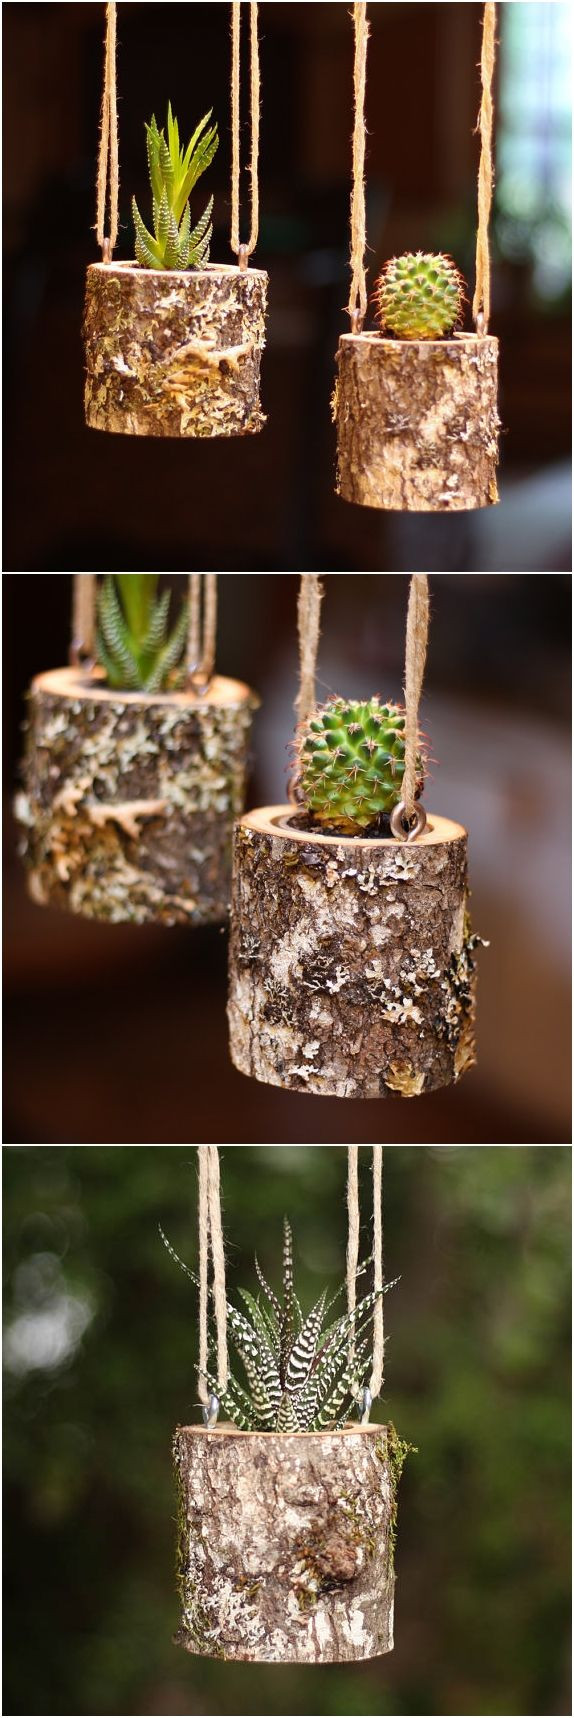 Best ideas about Hanging Succulent Planter . Save or Pin House Warming Gift Planter Hanging Planter Indoor Rustic Now.